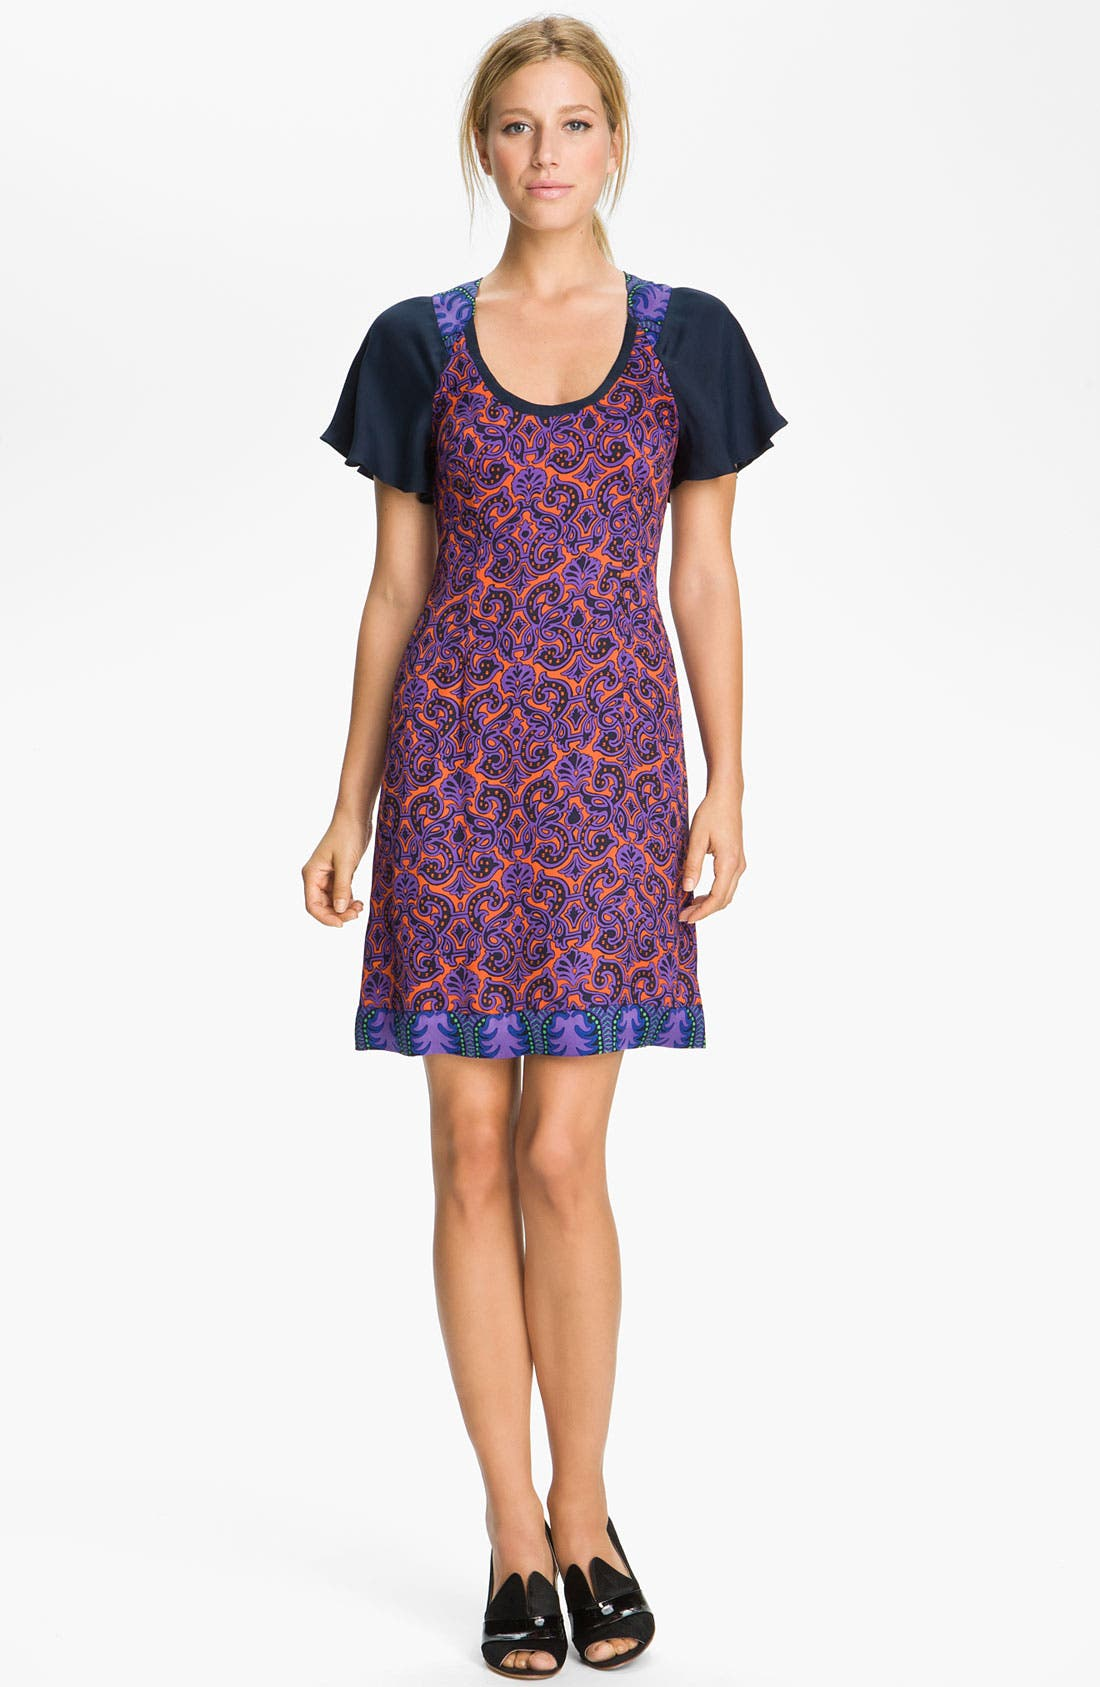 Alternate Image 1 Selected - Tracy Reese Mixed Print Foulard Dress